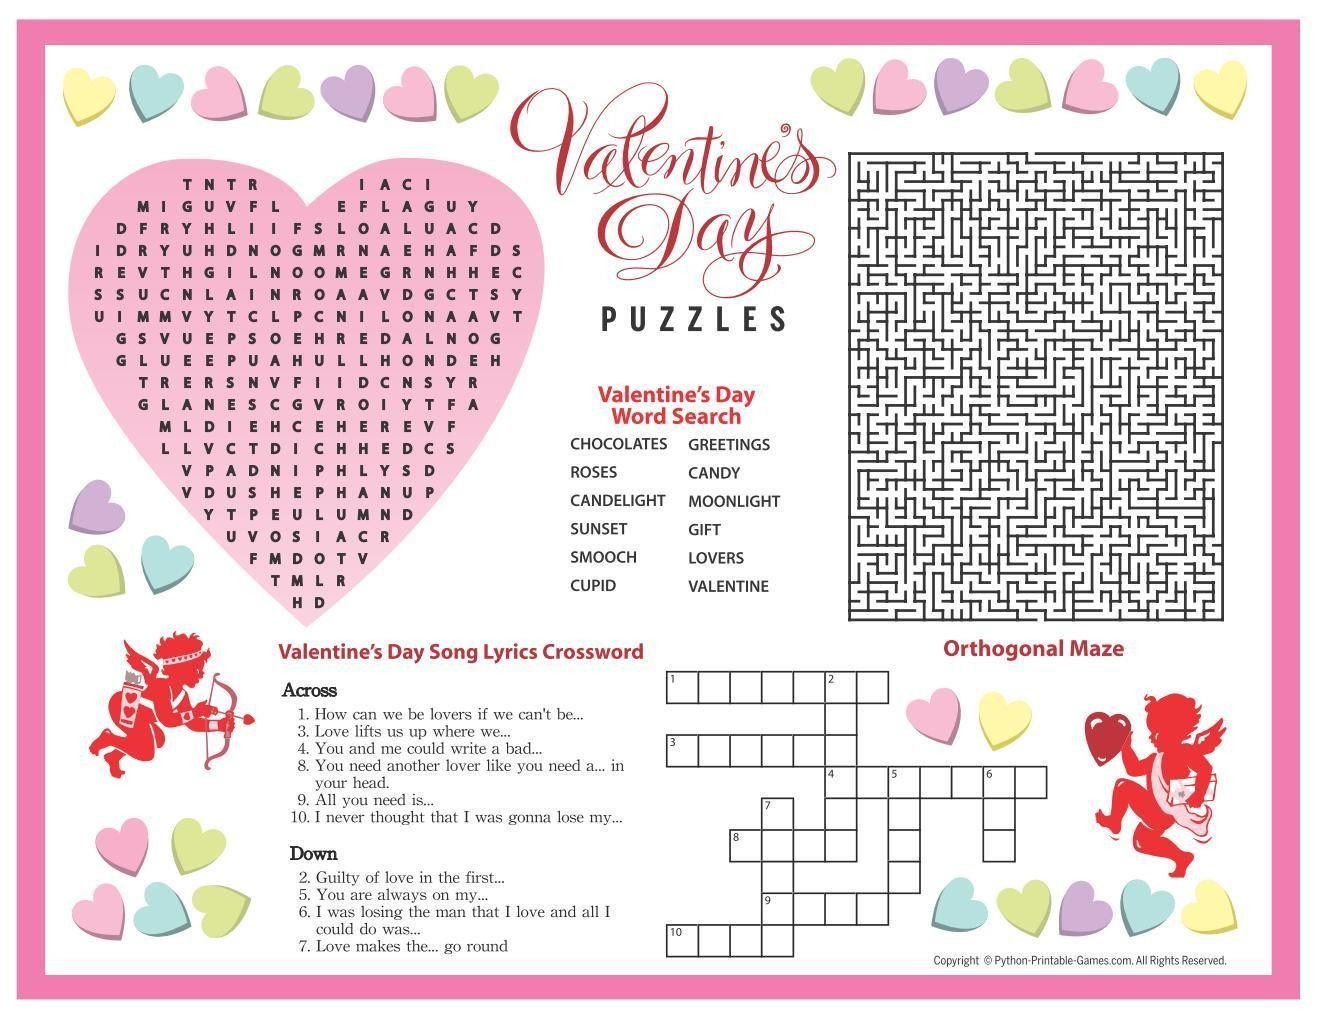 photograph about Valentine Crossword Puzzles Printable identified as Valentines Working day: Puzzles